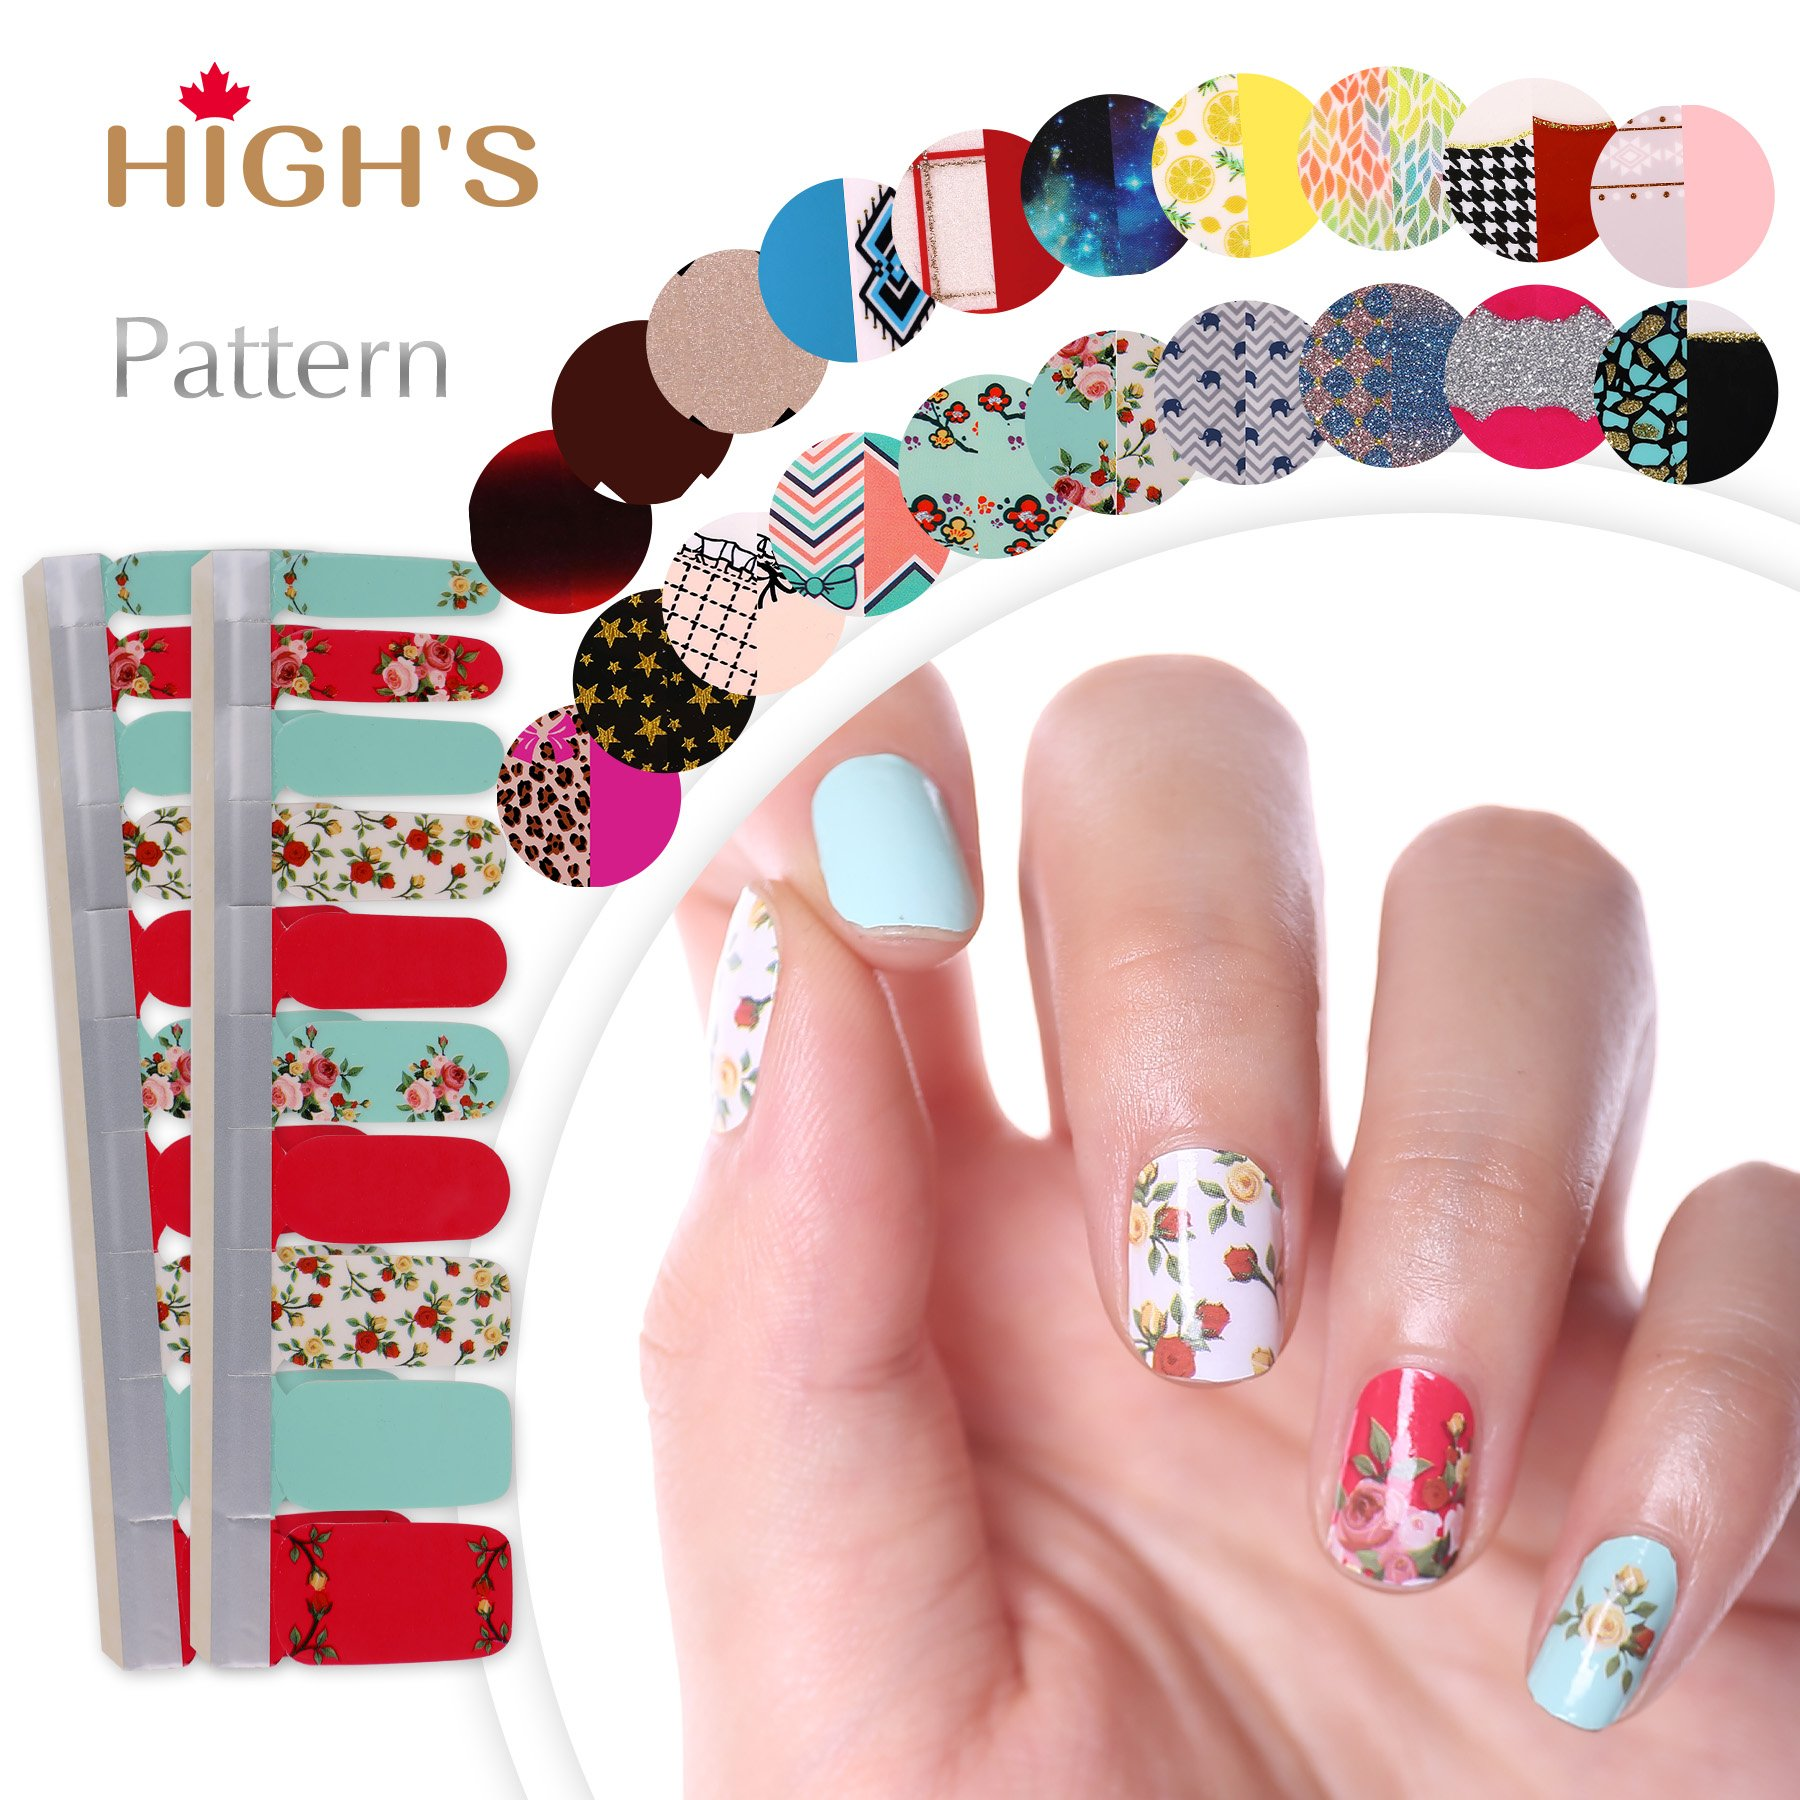 Amazon highs extre adhesion 20pcs nail art transfer decals highs extre adhesion 20pcs nail art transfer decals sticker pattern series the cocktail collection manicure diy prinsesfo Gallery